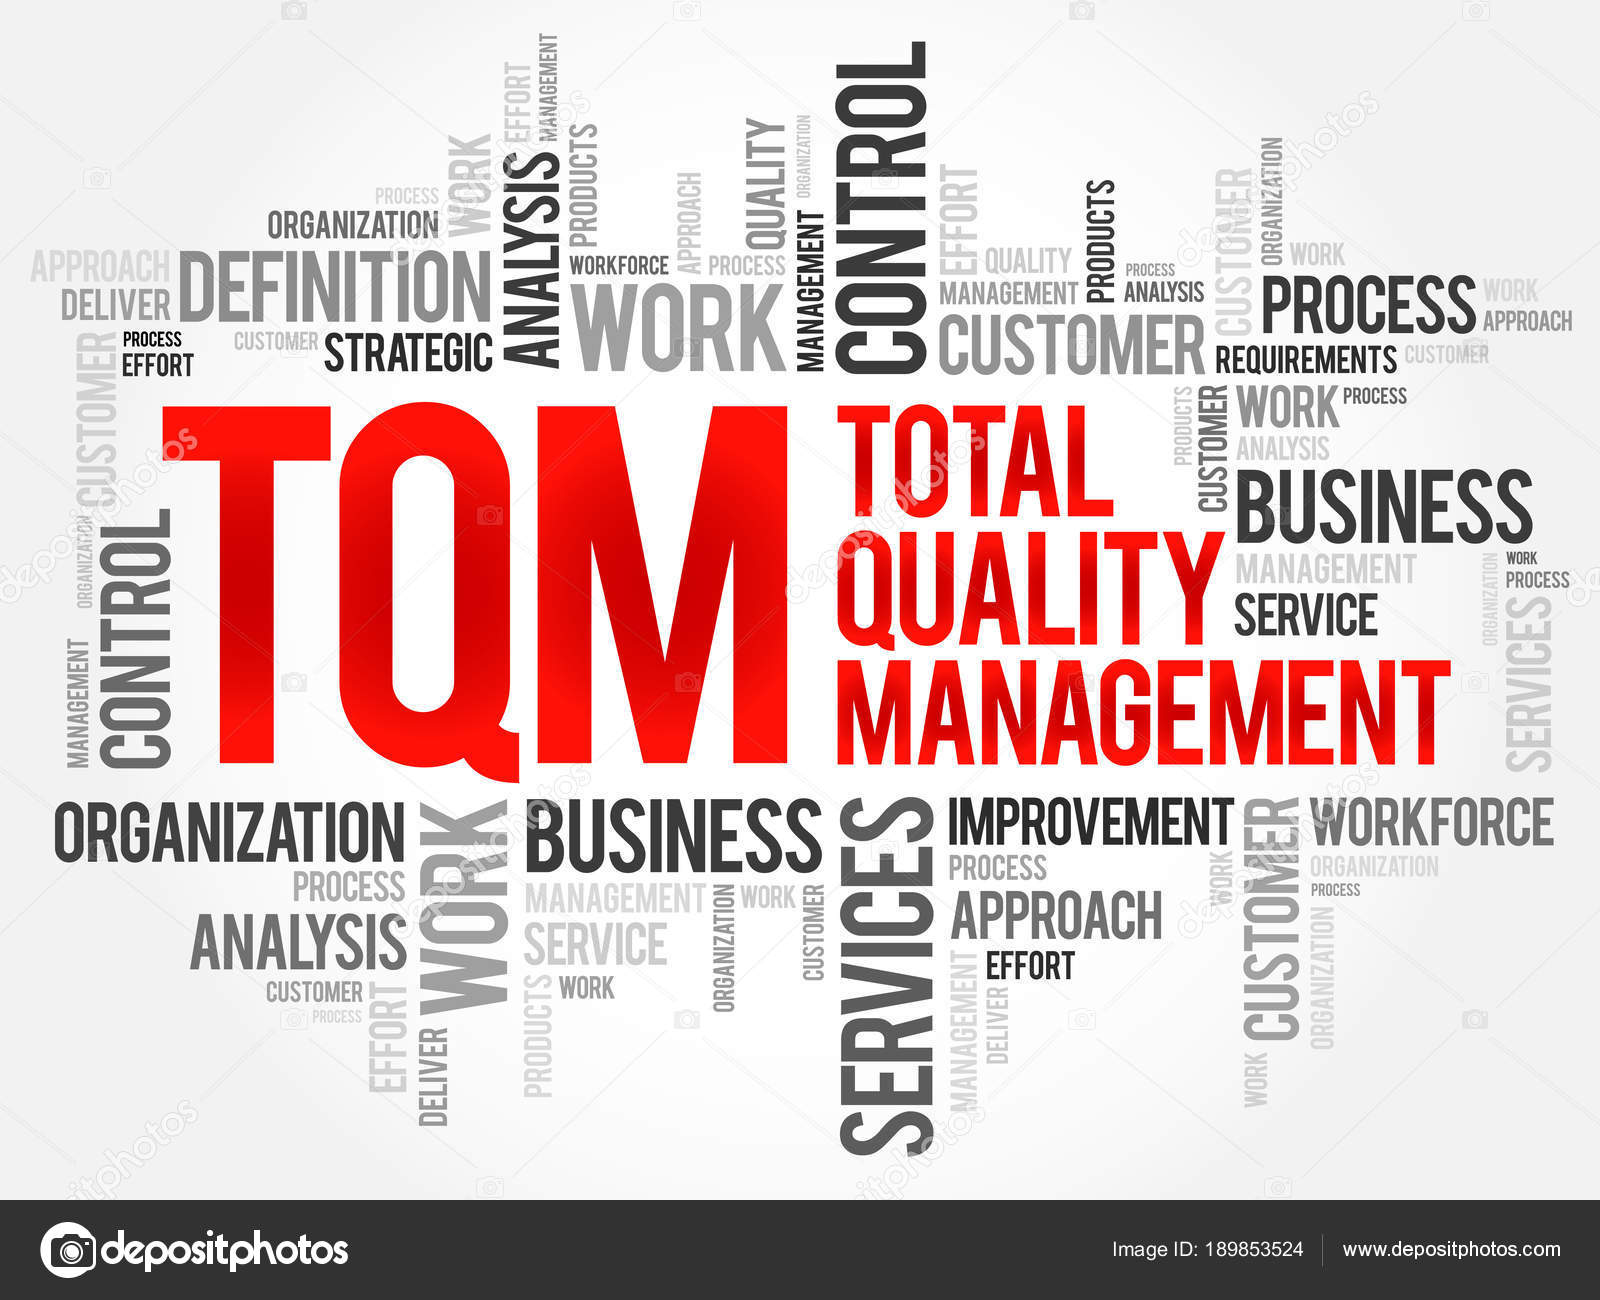 etisalat and total quality management tqm Tqm in abu dhabi media company  quality planning technology partners with etisalat  introduction to total quality management zaheer khawaja.